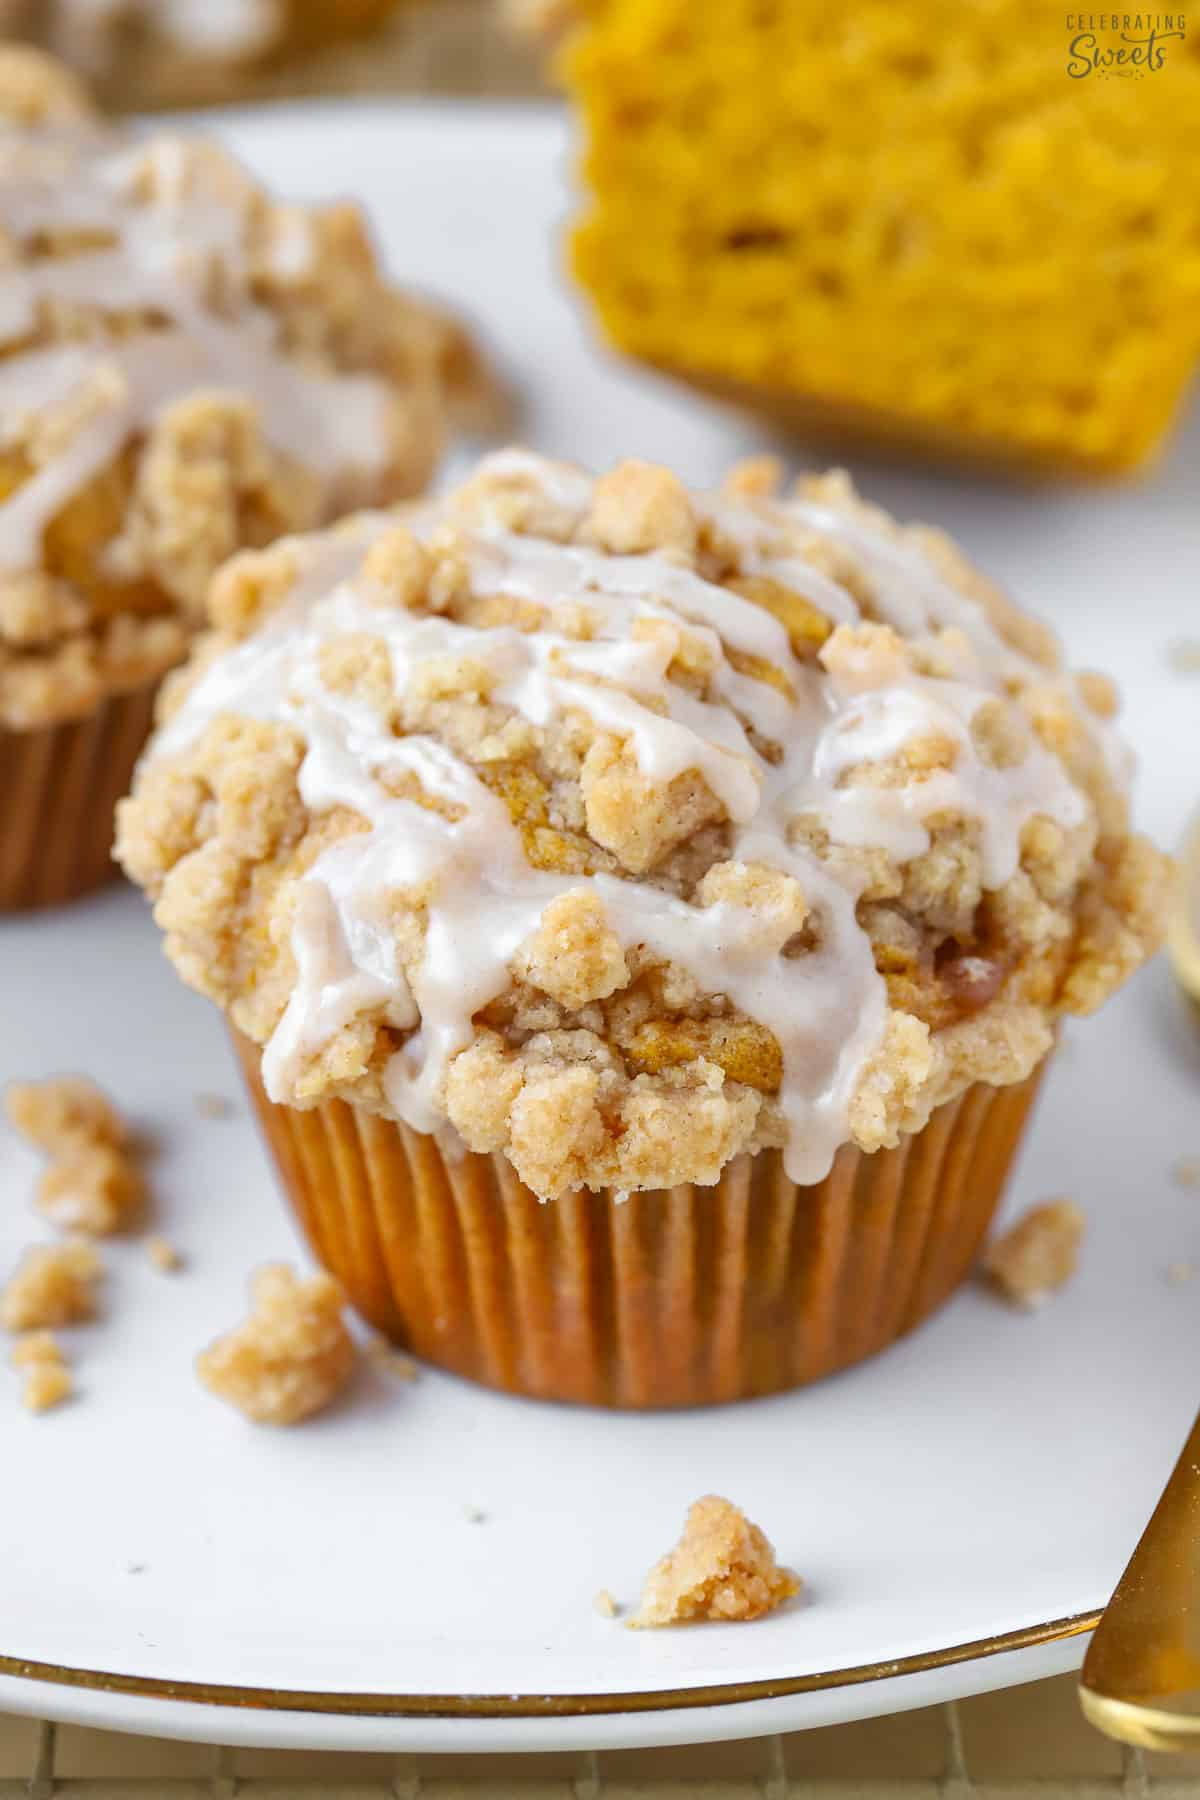 Pumpkin muffin with crumb topping and white icing on a white plate.